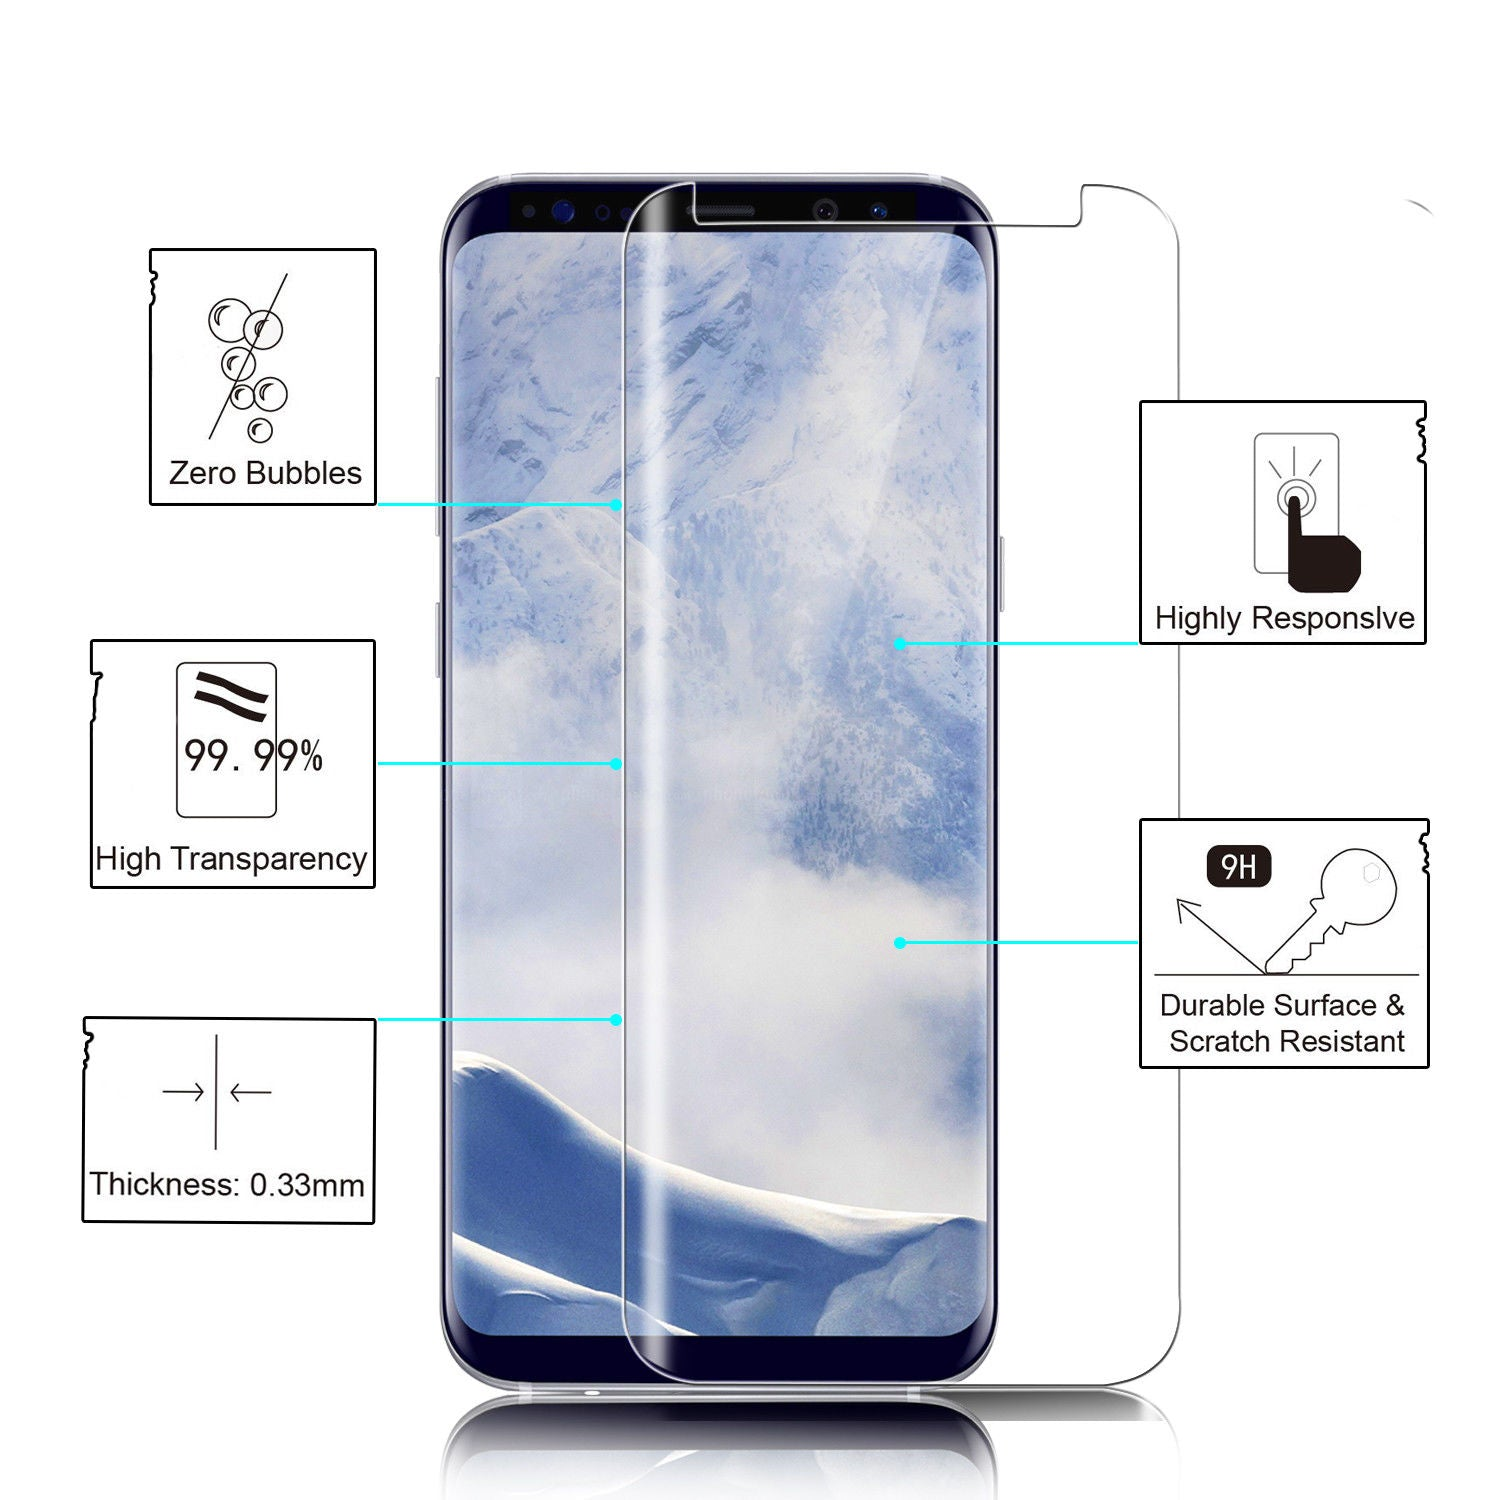 Mirror Shine Flip Cover Note 9